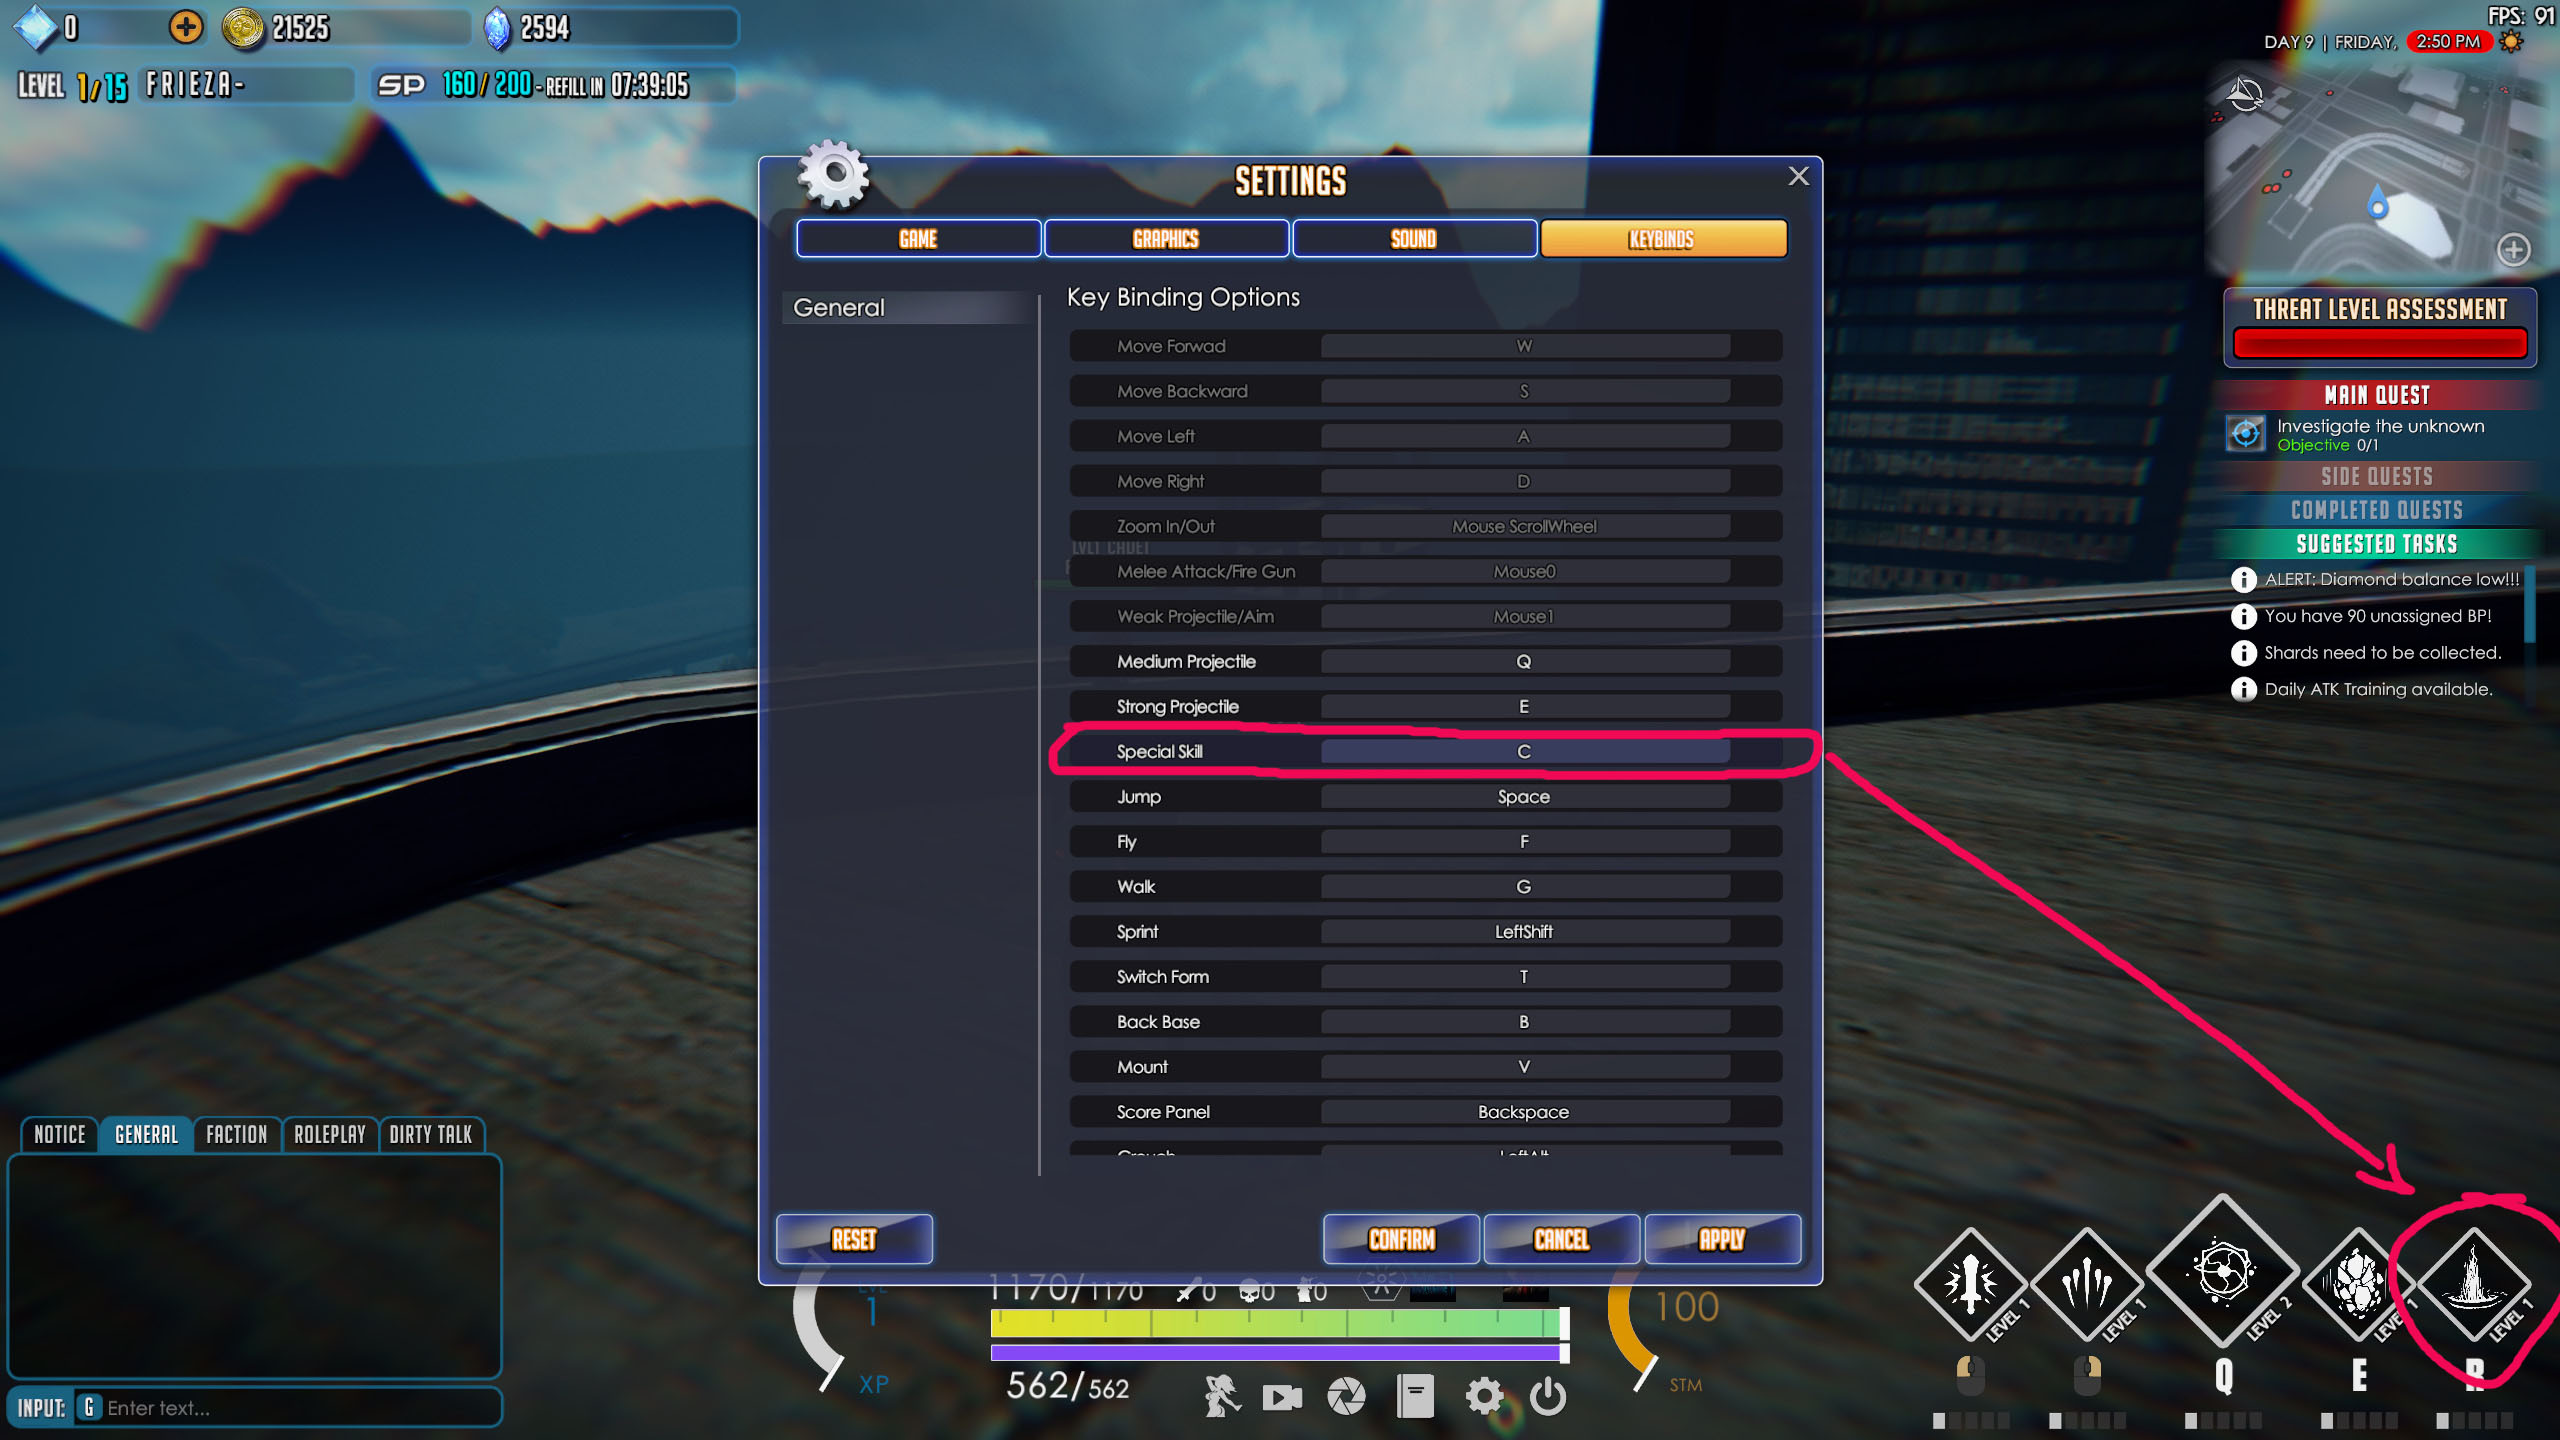 Updated UI on any keybinding changes